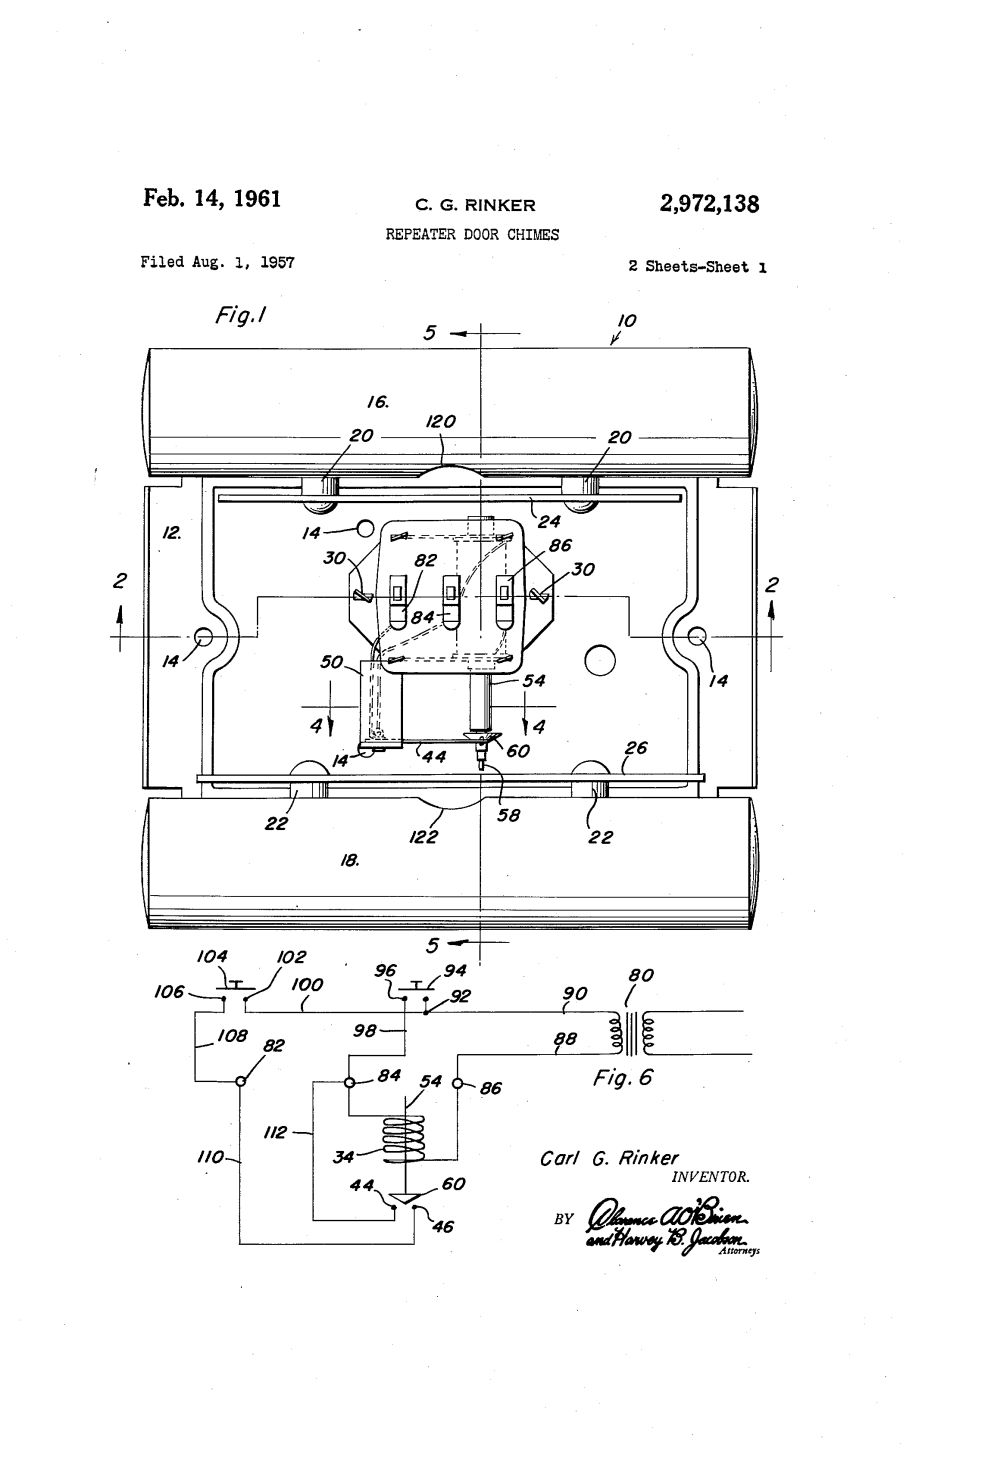 medium resolution of front and rear doorbell wiring diagrams patent drawing